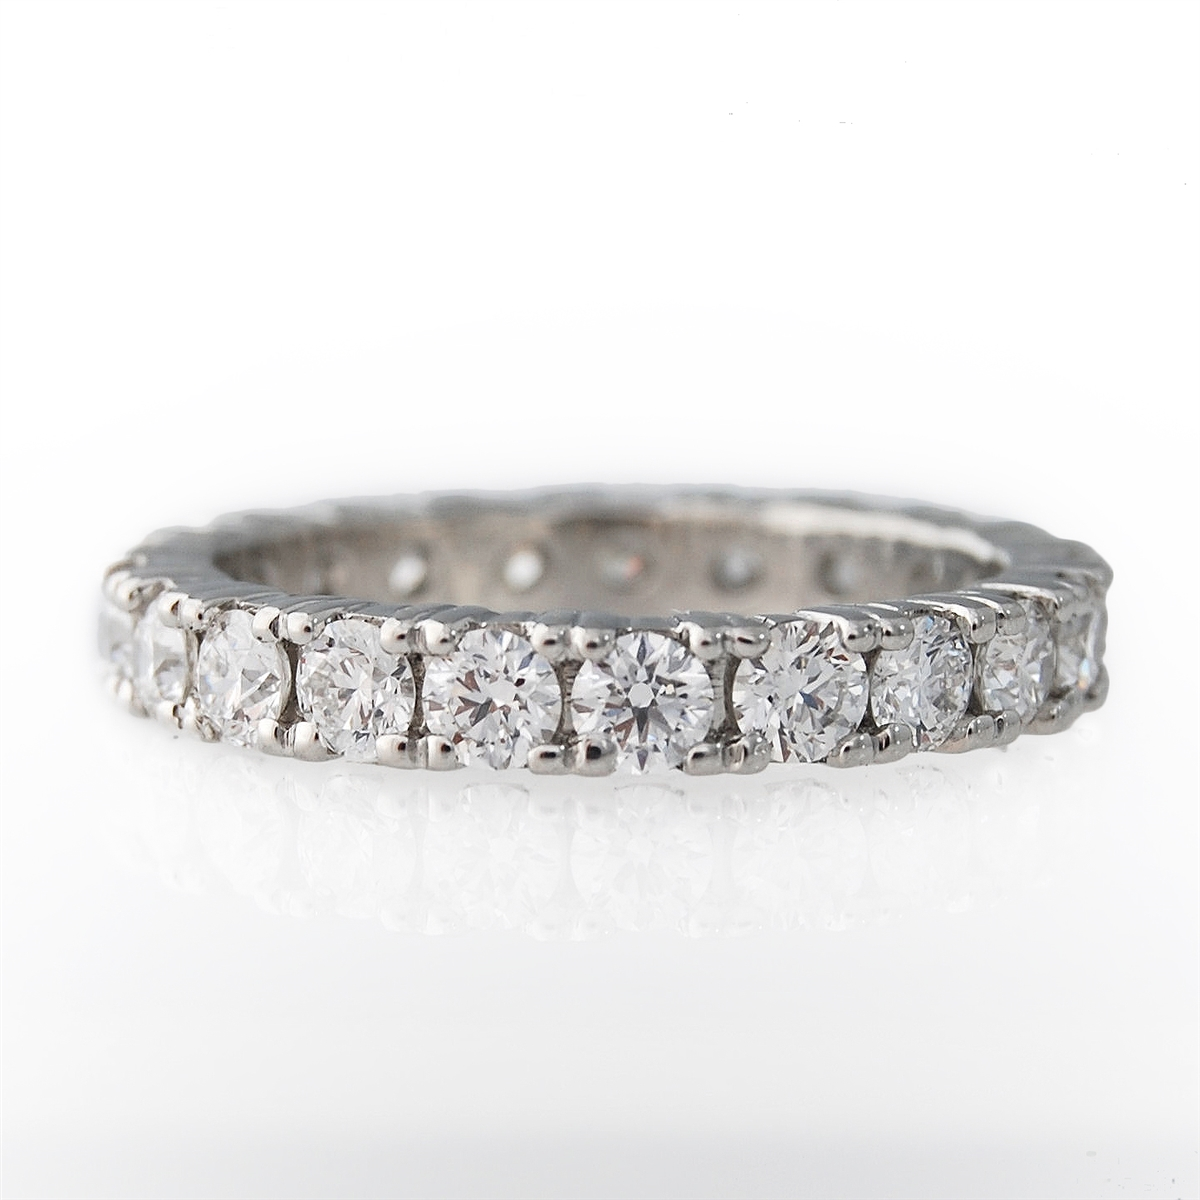 betteridge anne sportun band shop jewellery angela diamond pave narrow